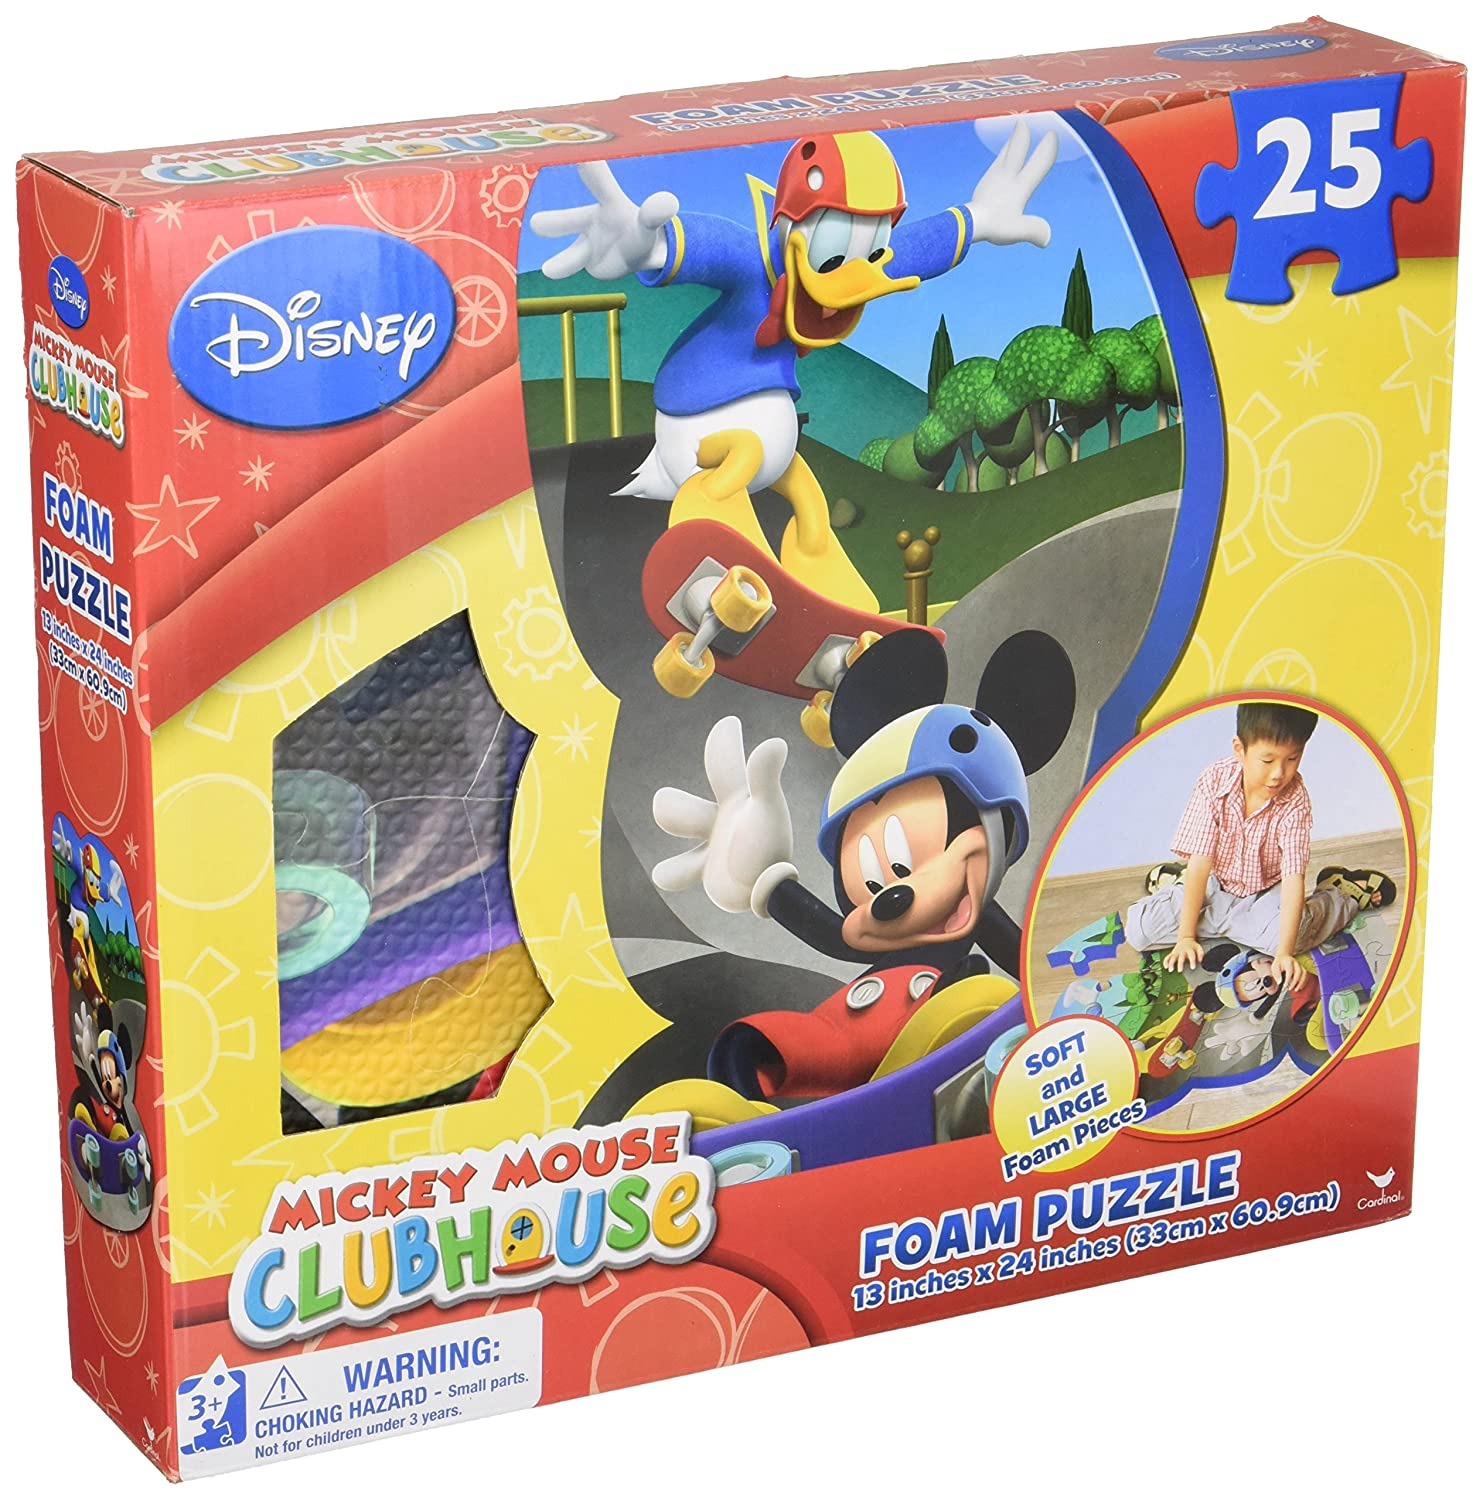 Mickey Mouse Clubhouse Foam Puzzle